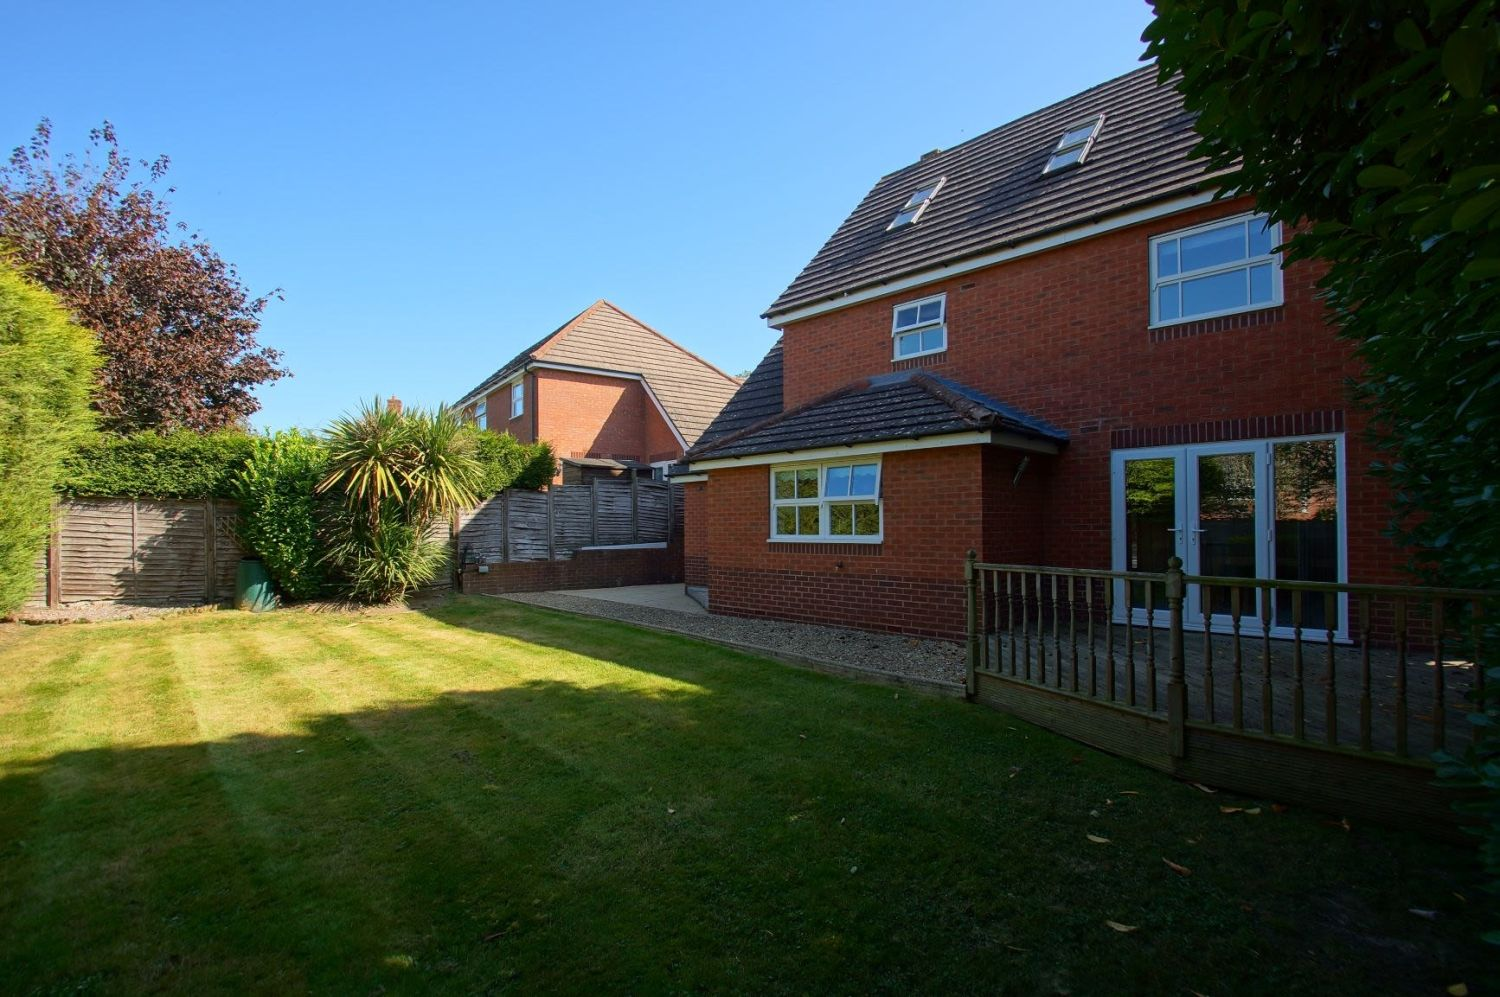 4 bed detached for sale in Acre Lane, Webheath  - Property Image 25